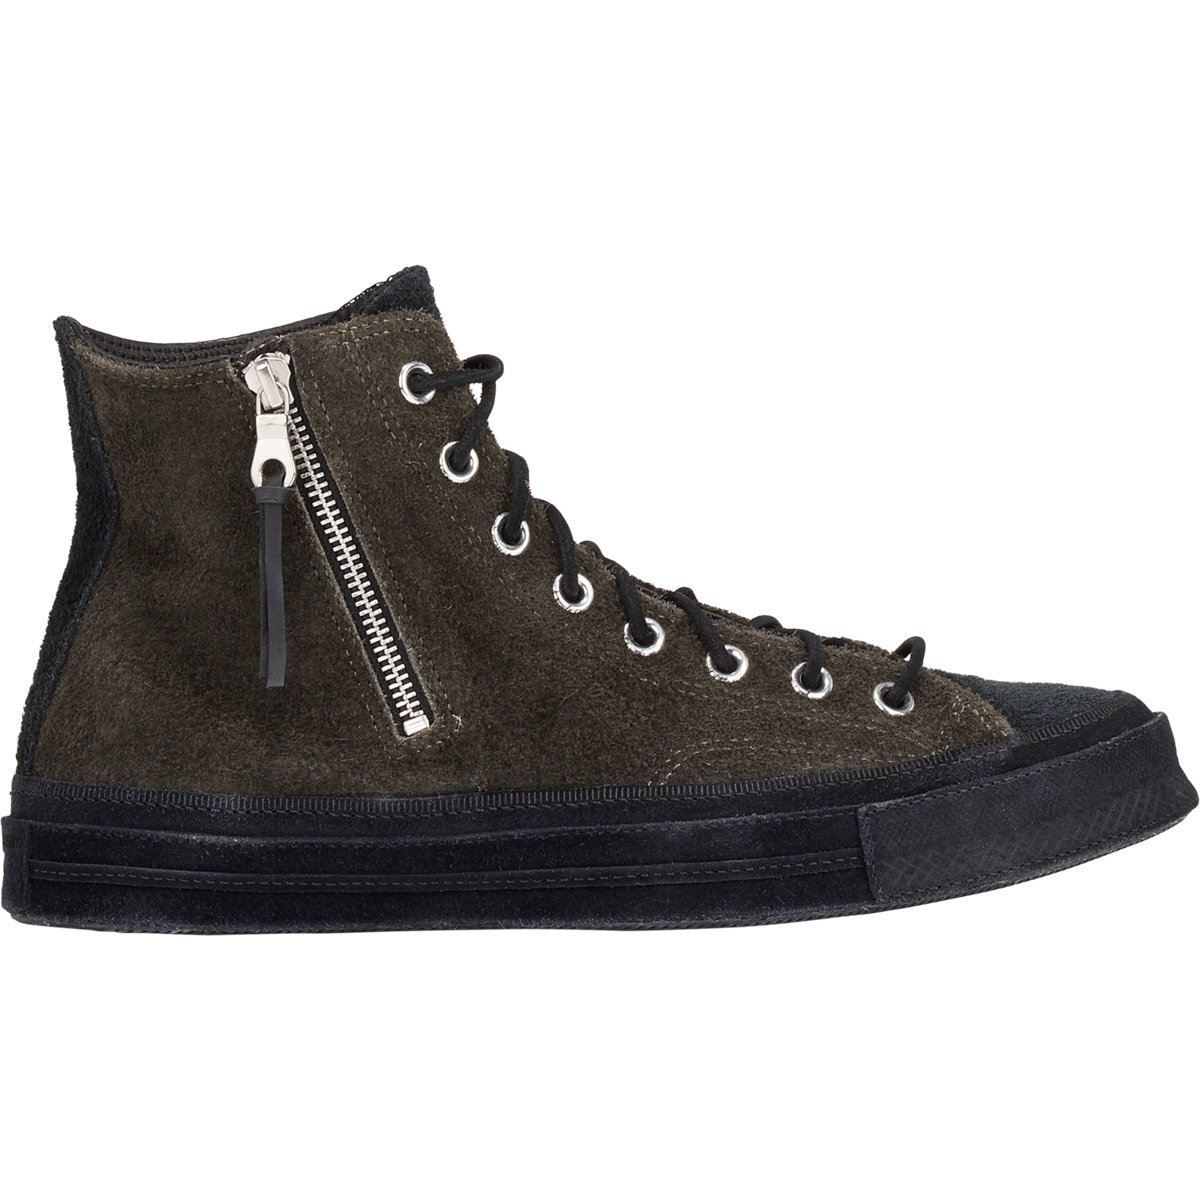 960f5d7508cf Converse Chuck Taylor All Star 1970 s Hi Zip Sneakers in Black for ...